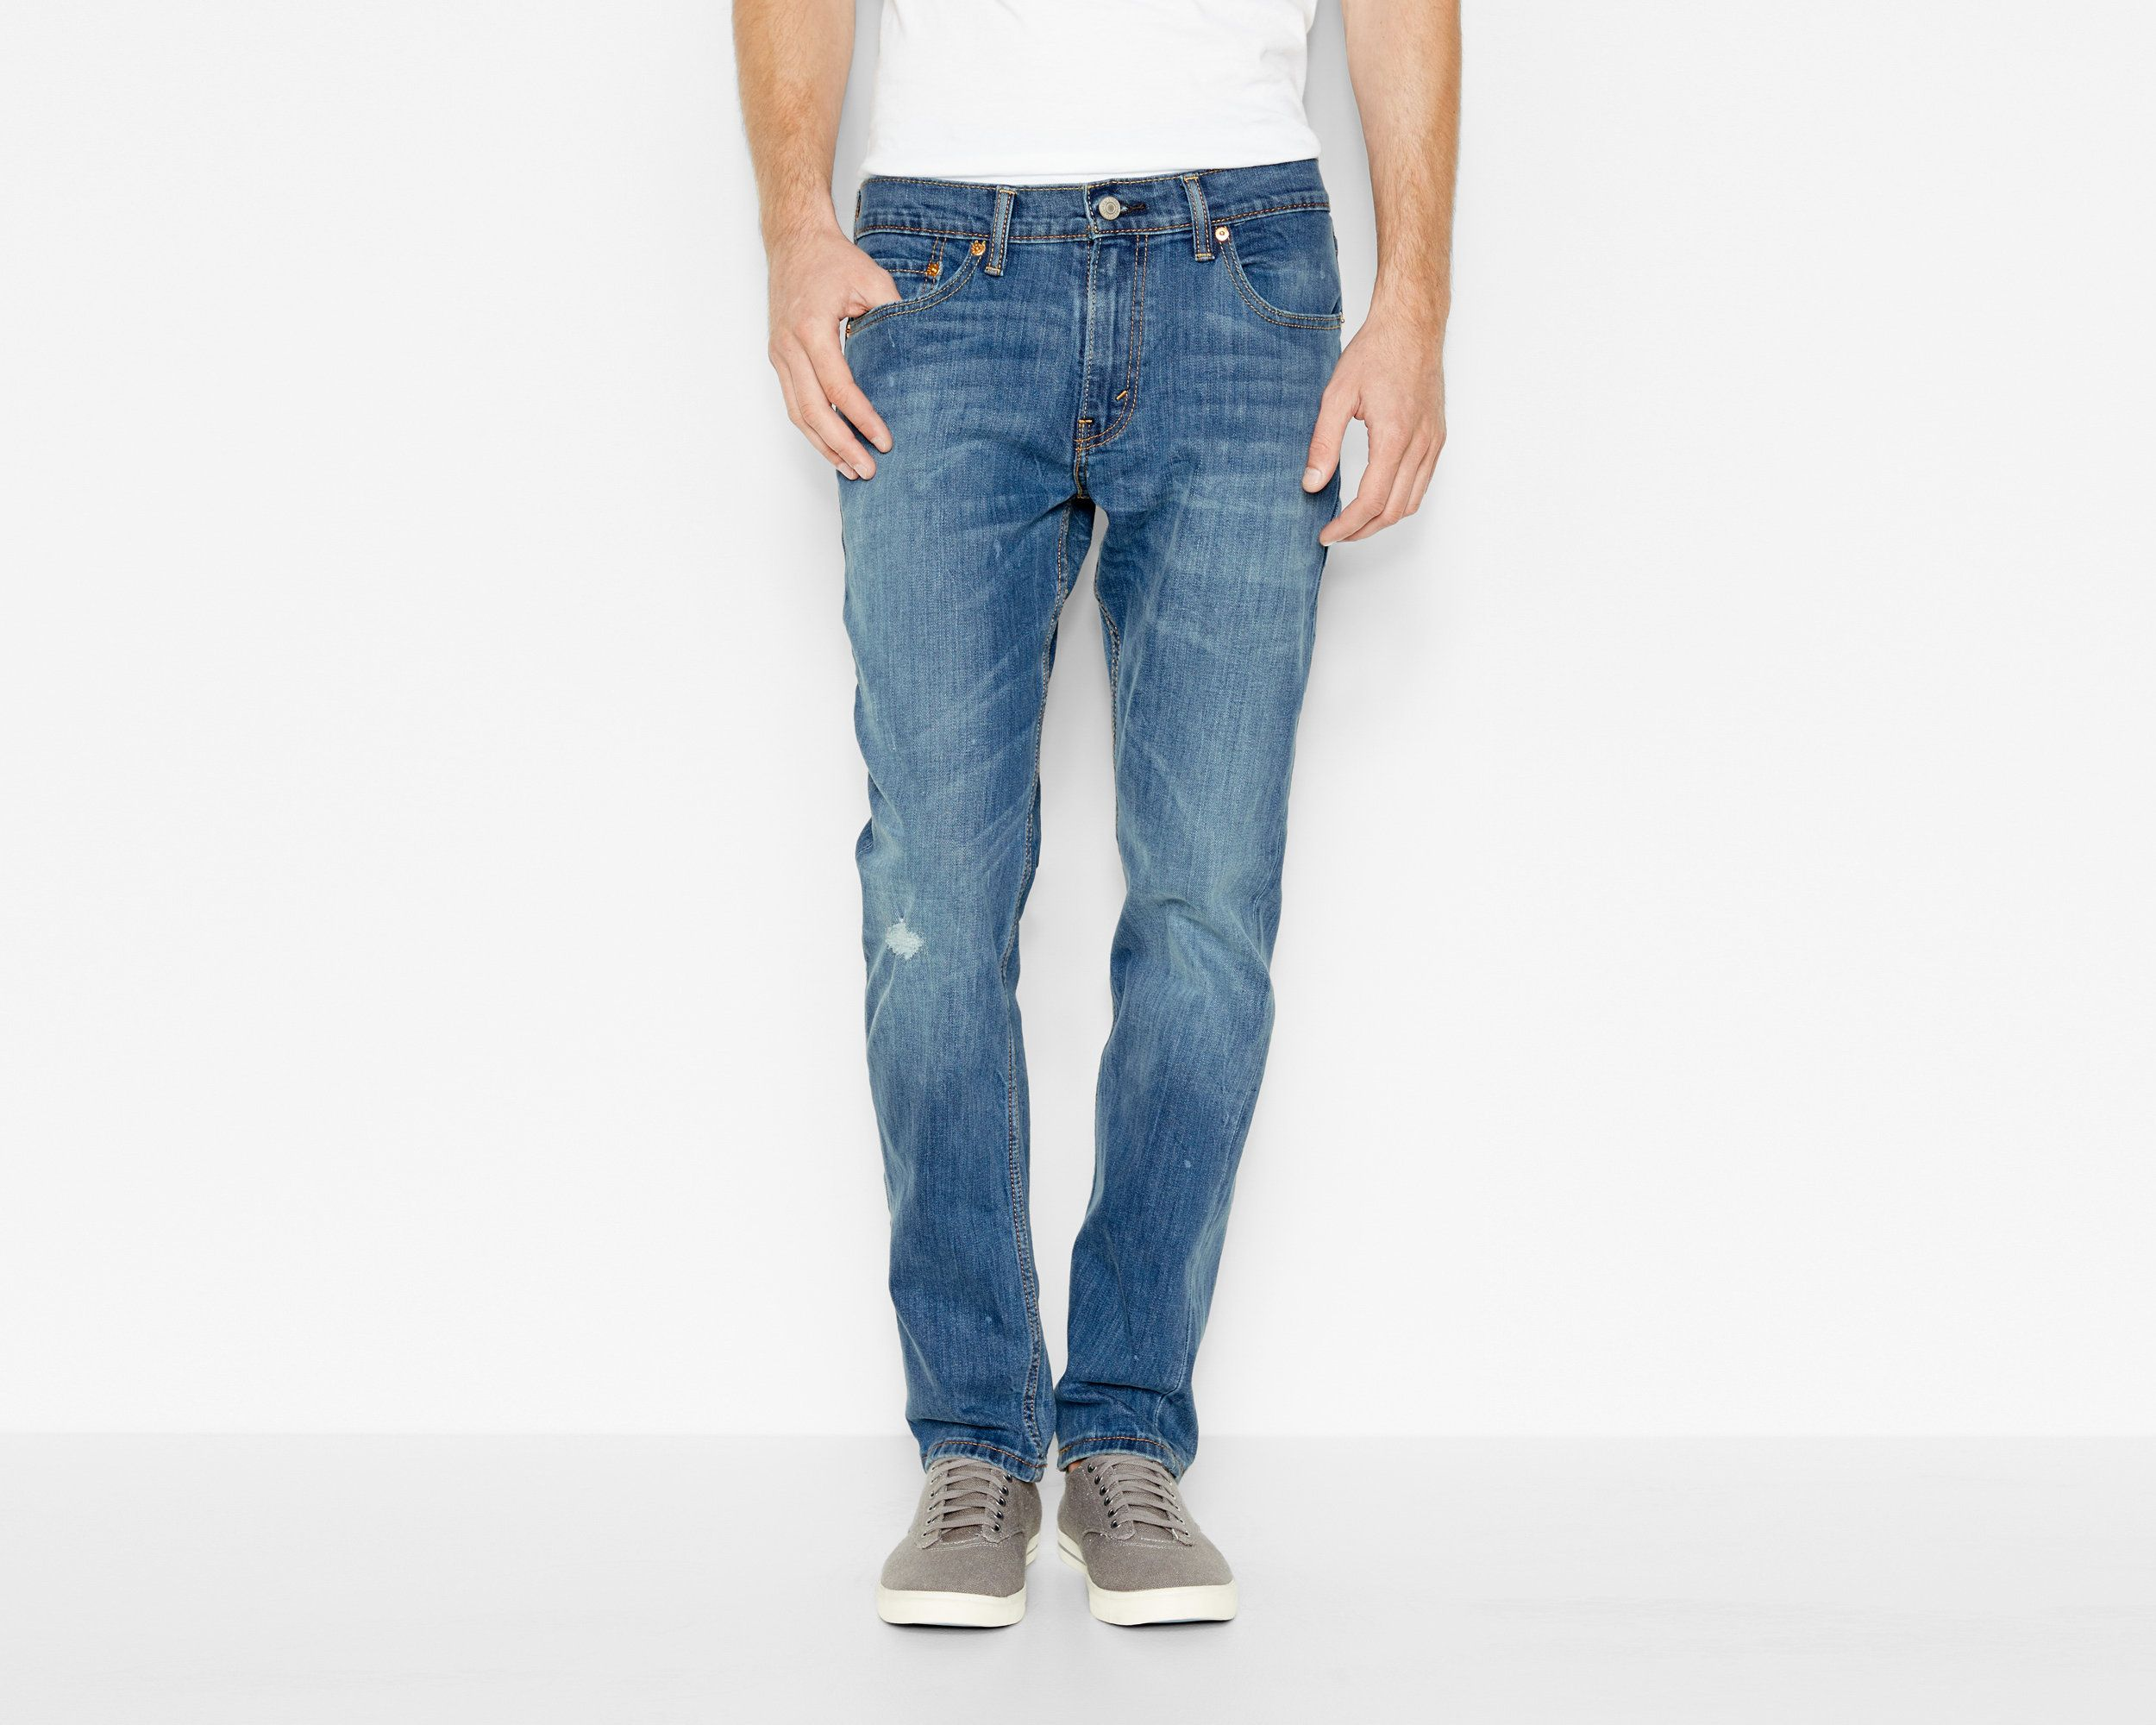 511™ Slim Fit Jeans | Damaged Stone |Levi's® United States (US)